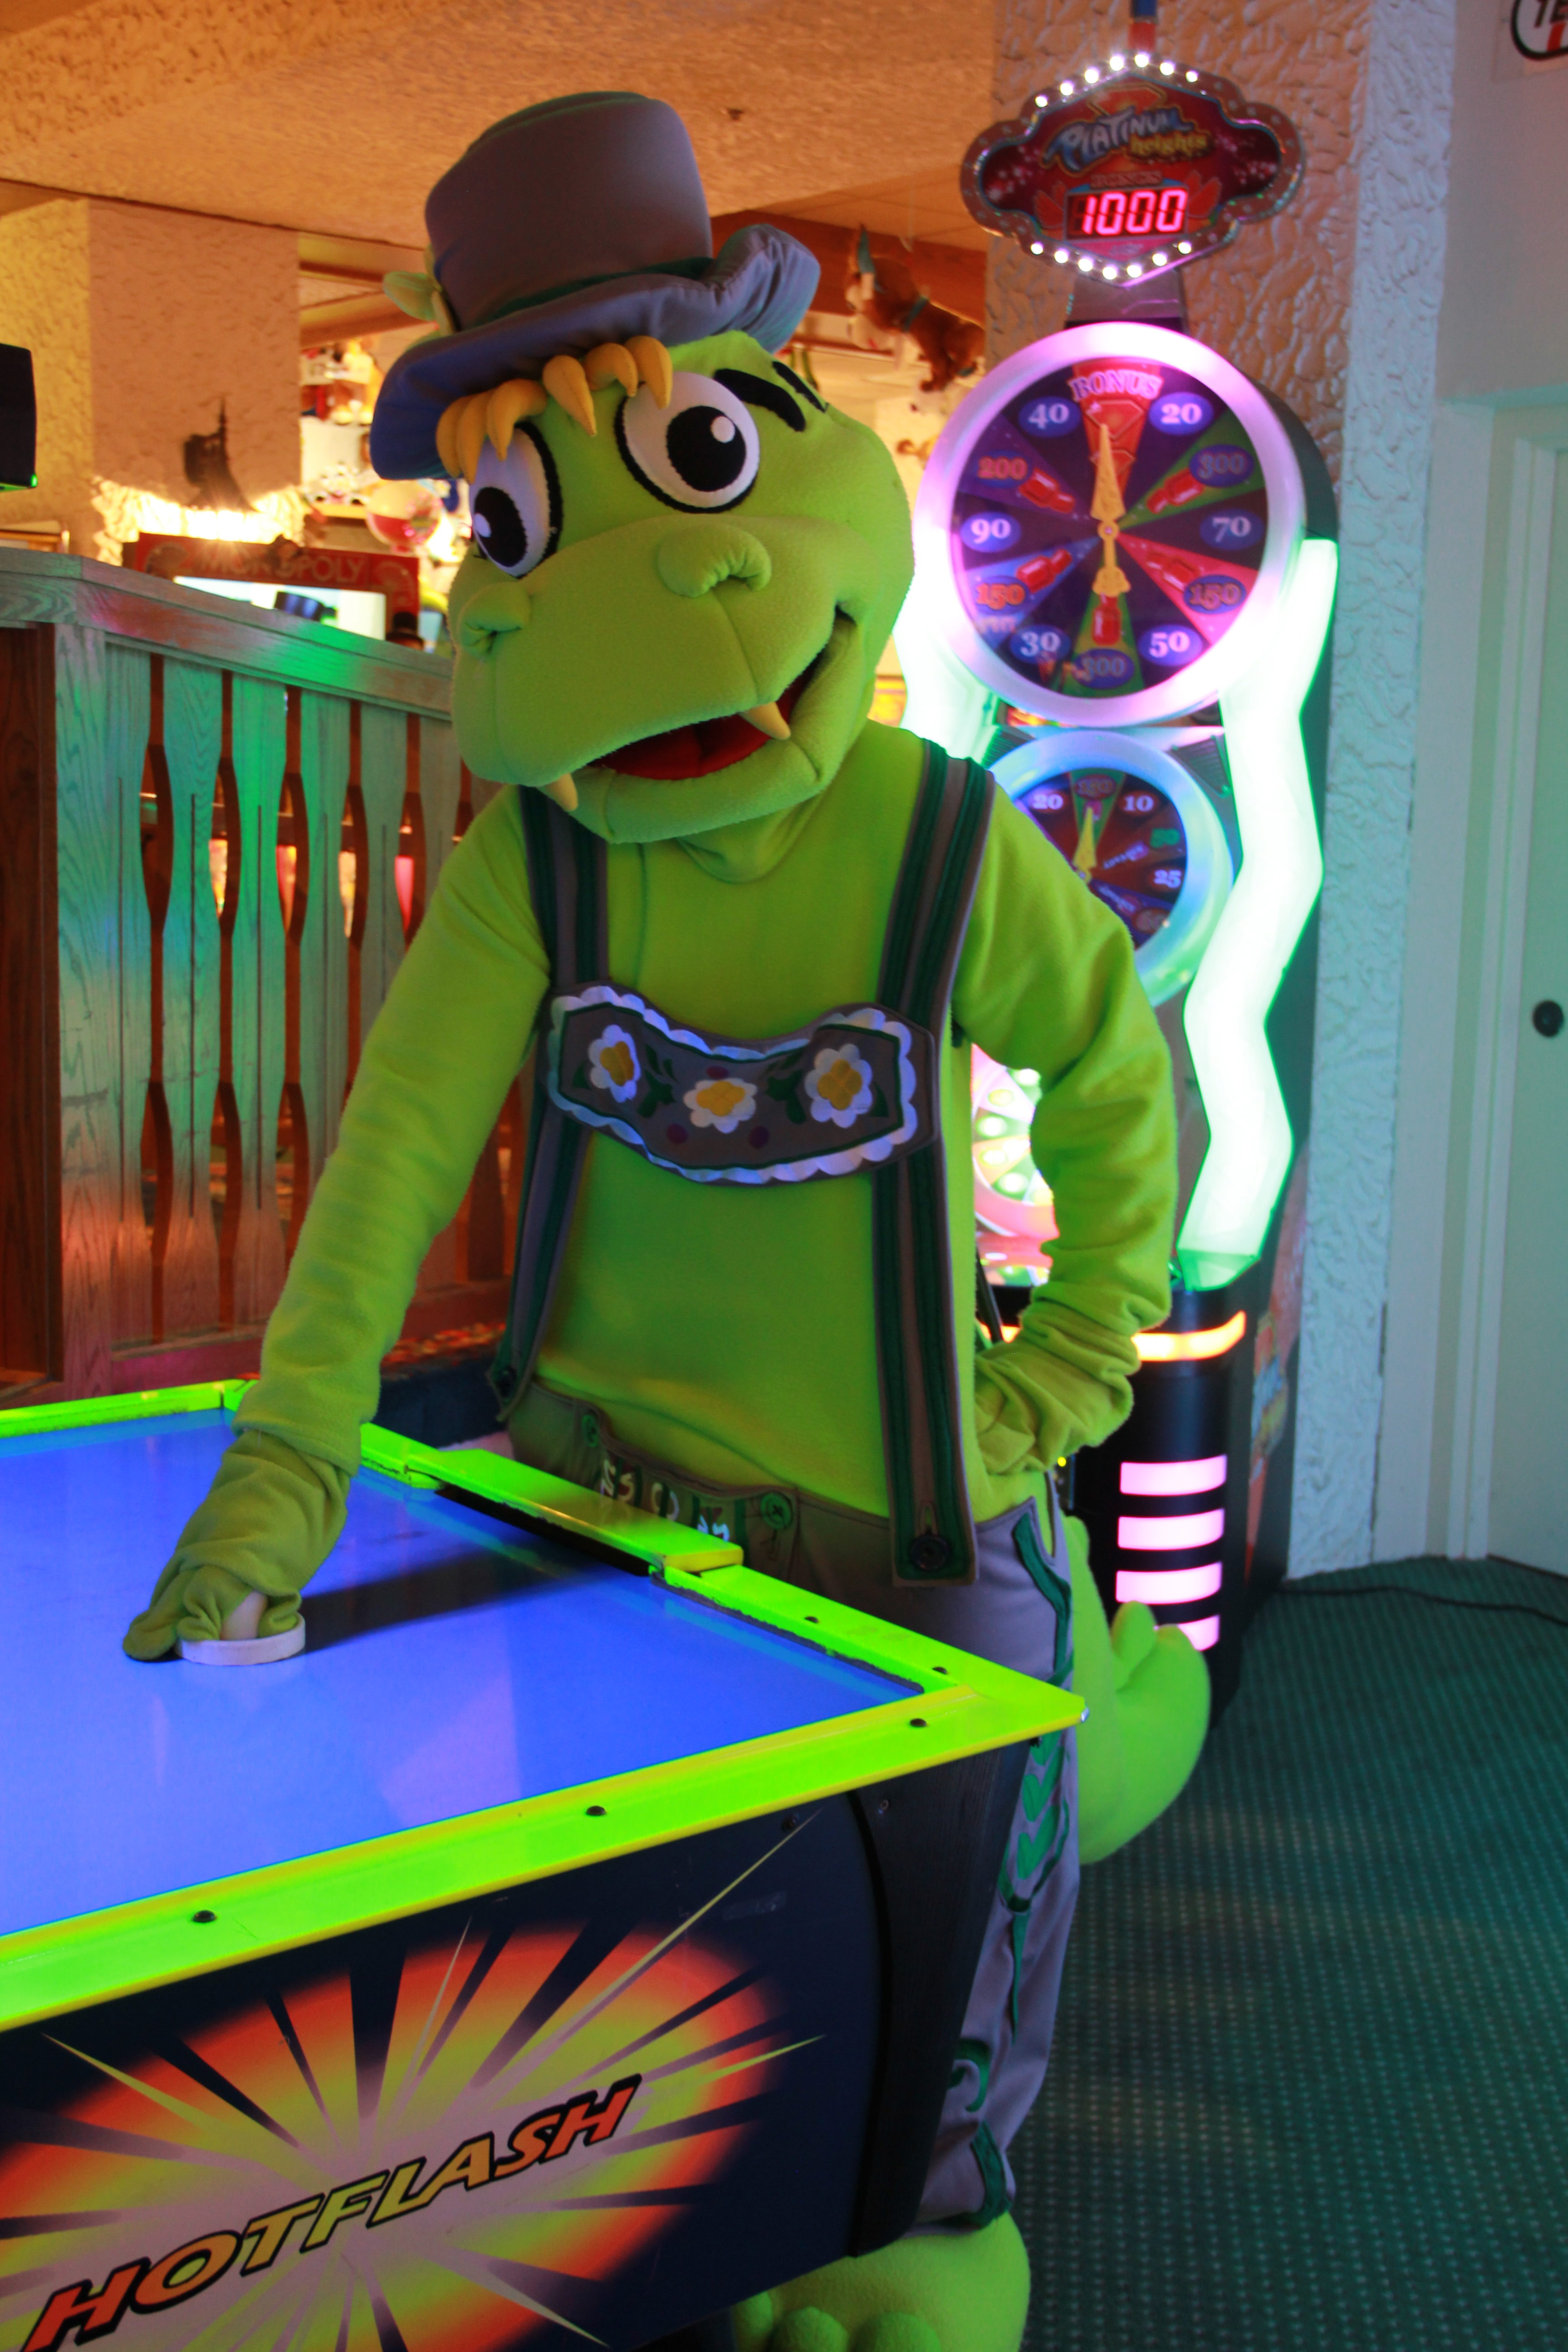 Willy plays Air Hockey